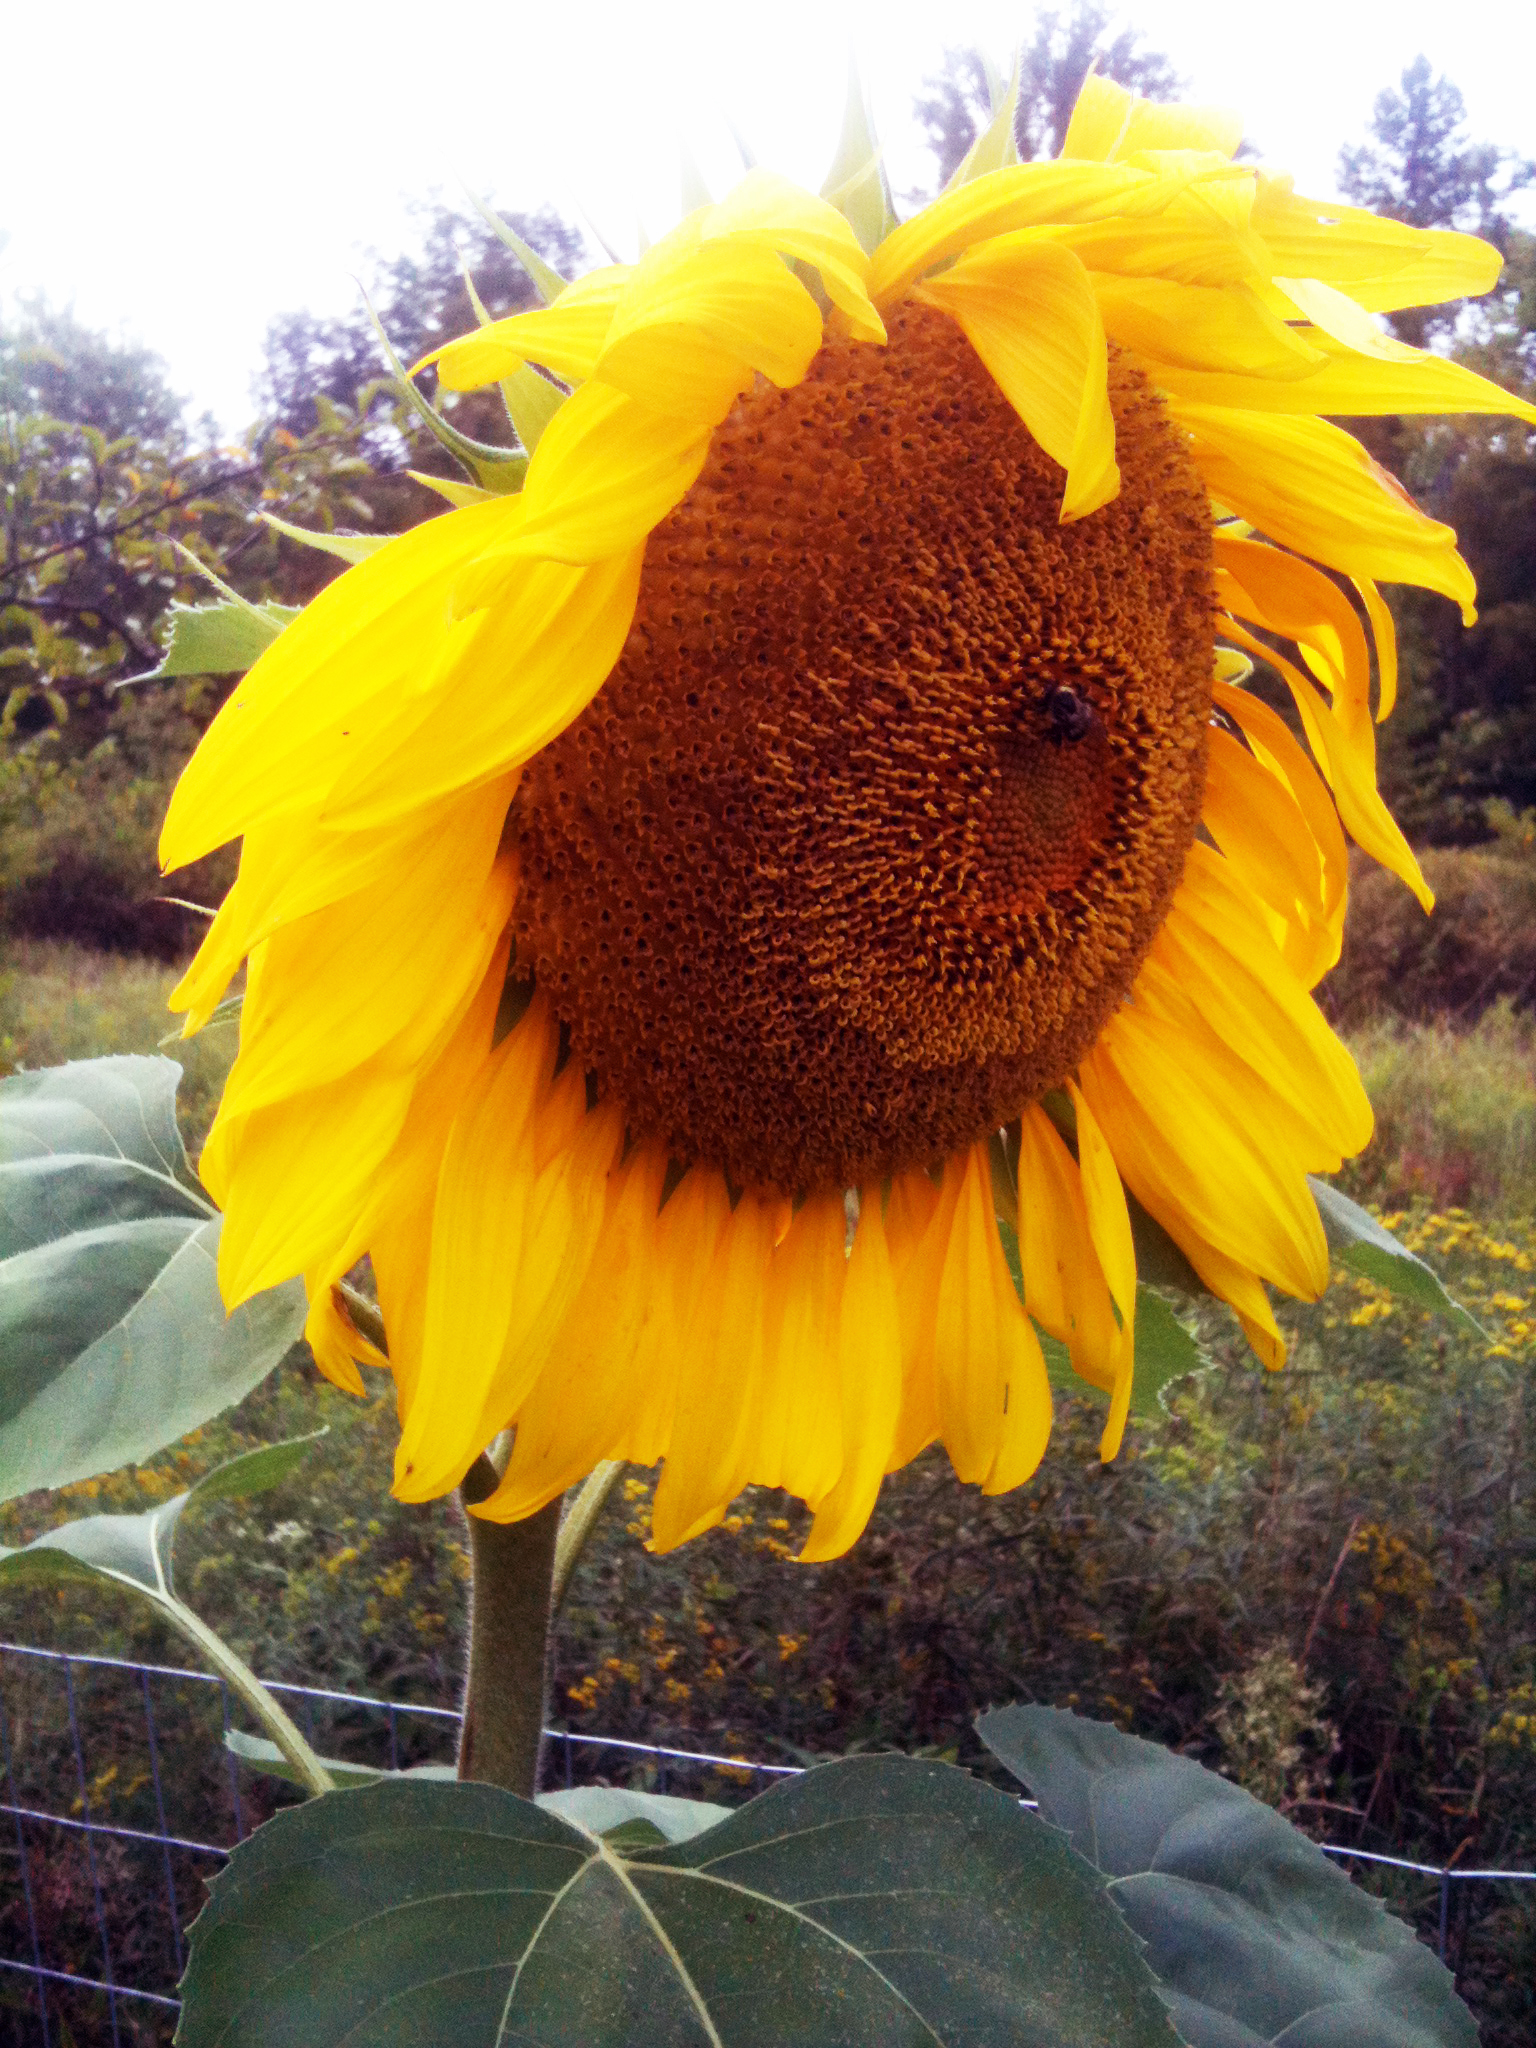 Sunflowers are just so cool. I wonder when we can harvest sunflower seeds....